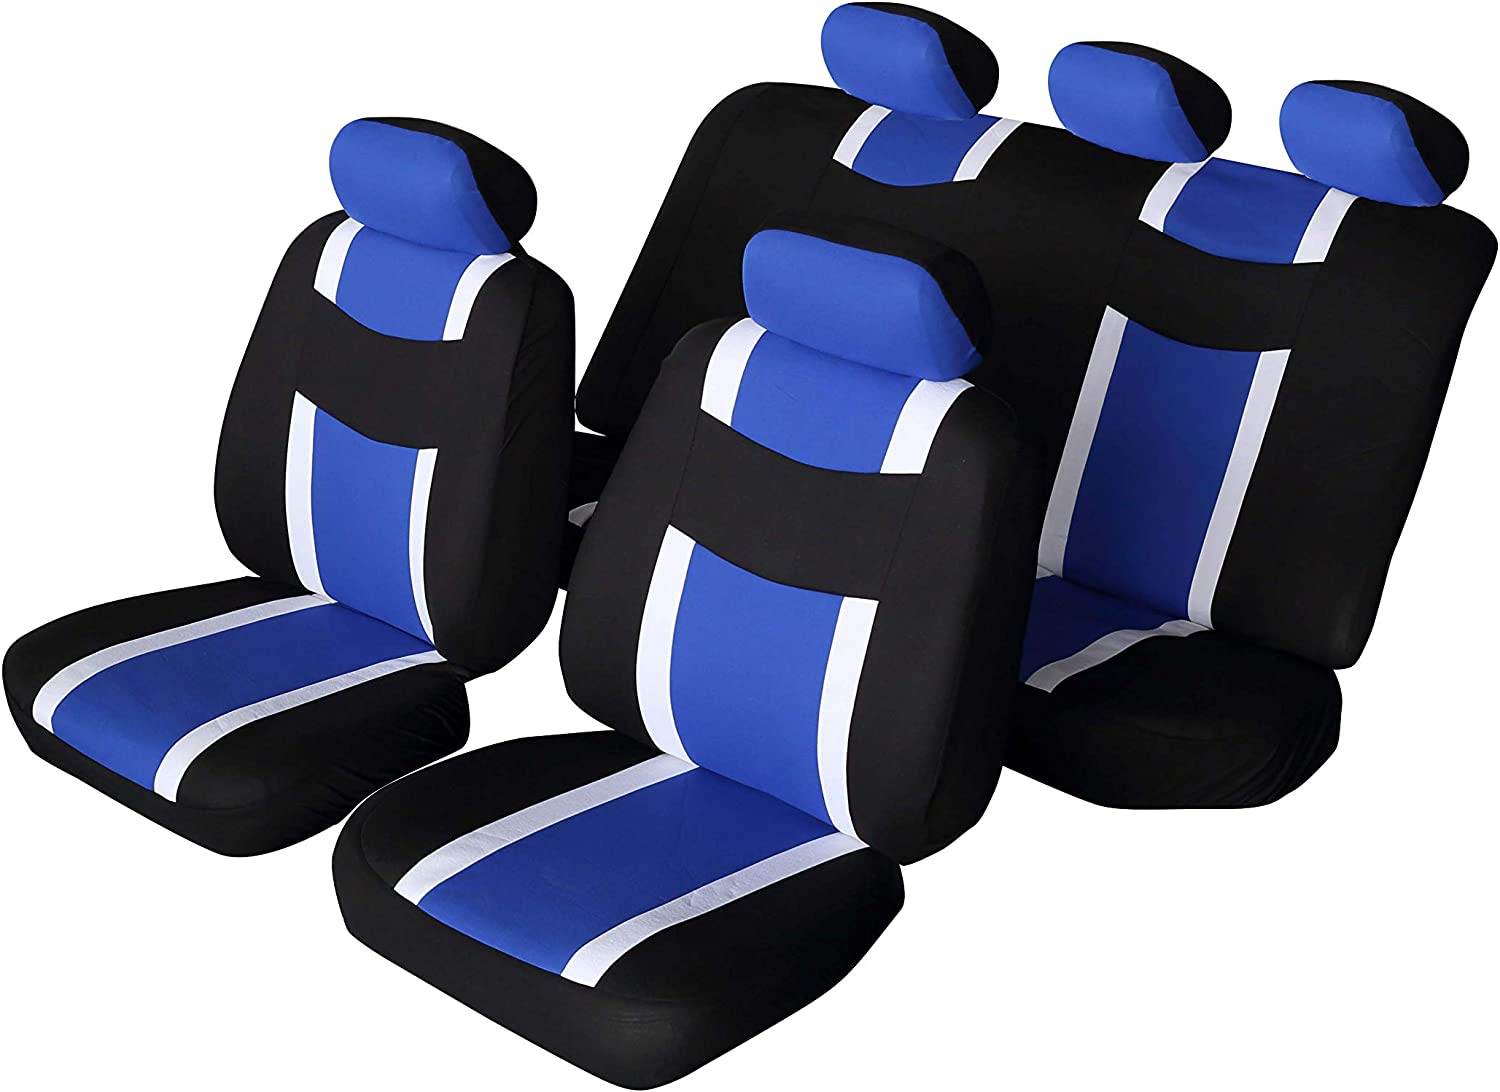 flatcloth Blue, Full Set AUTONISE Universal fit Classic Sport Bucket seat Cover Fit Most Car,Truck, SUV, or Van with headrest Airbag Compatible